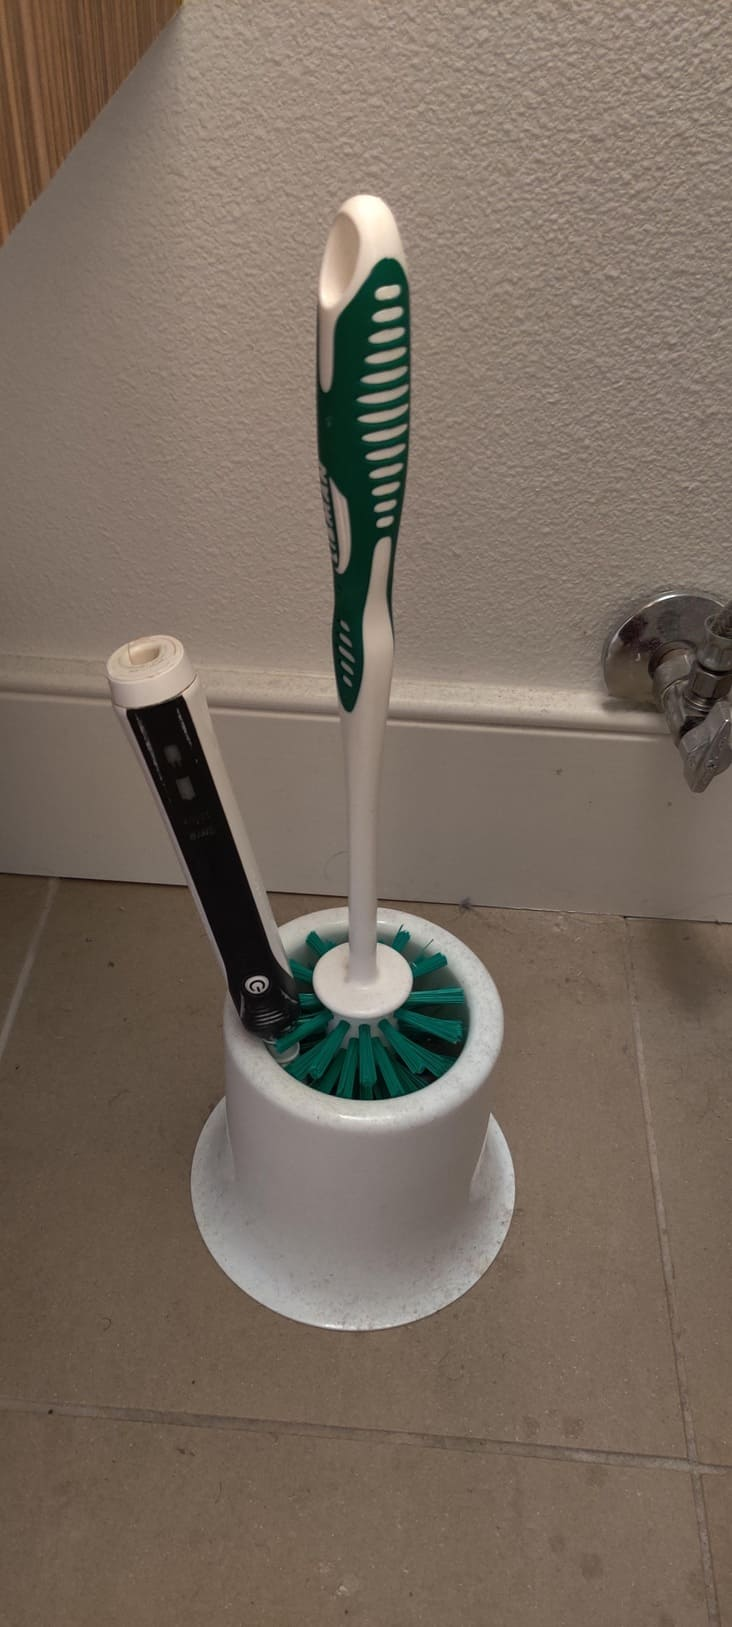 tooth brush with toilet brush frustrating picture